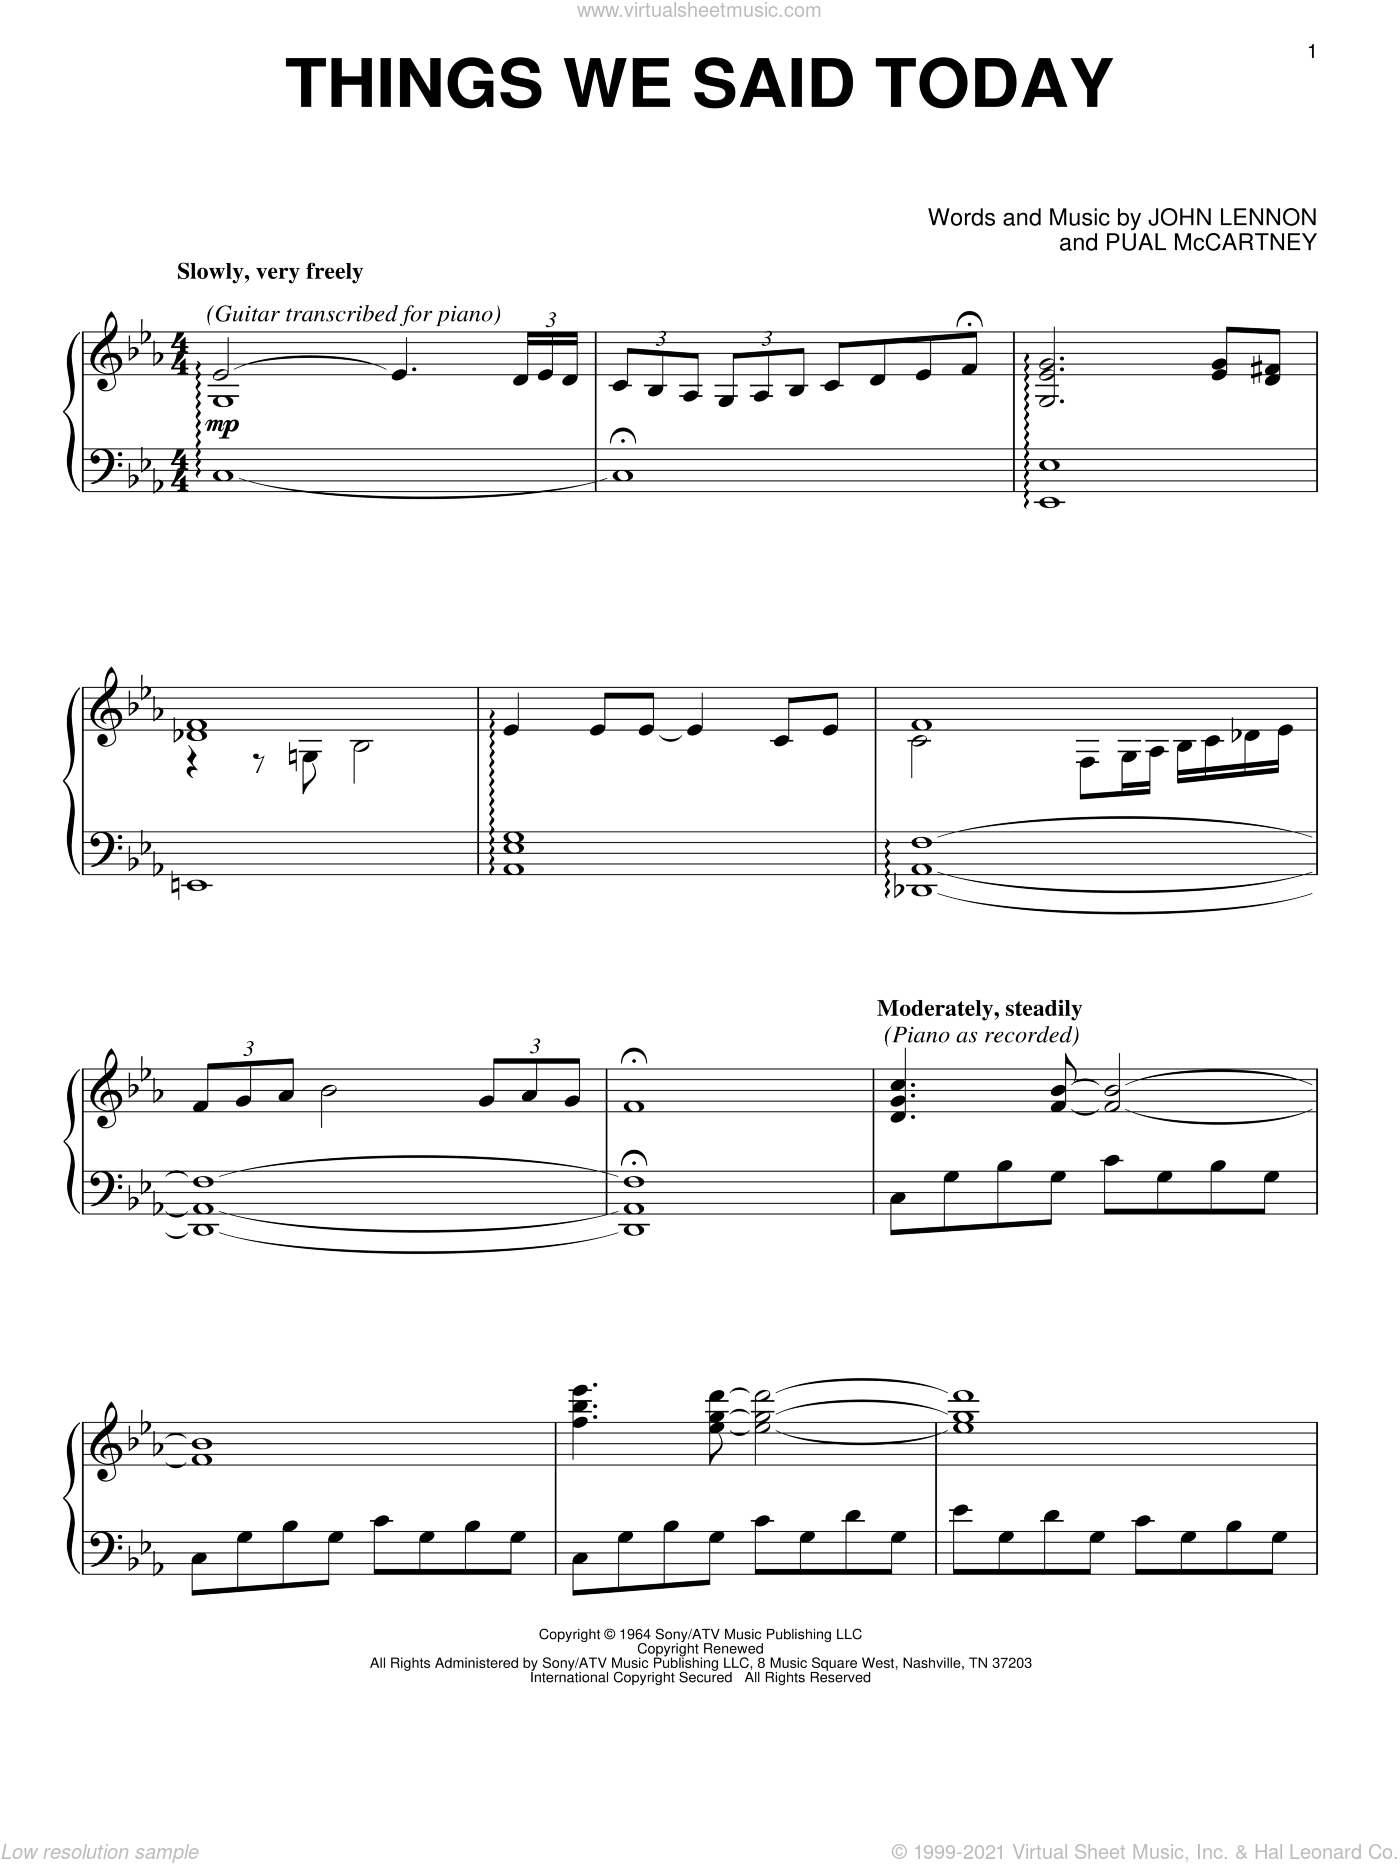 Things We Said Today sheet music for piano solo by David Lanz, The Beatles, John Lennon and Paul McCartney, intermediate skill level